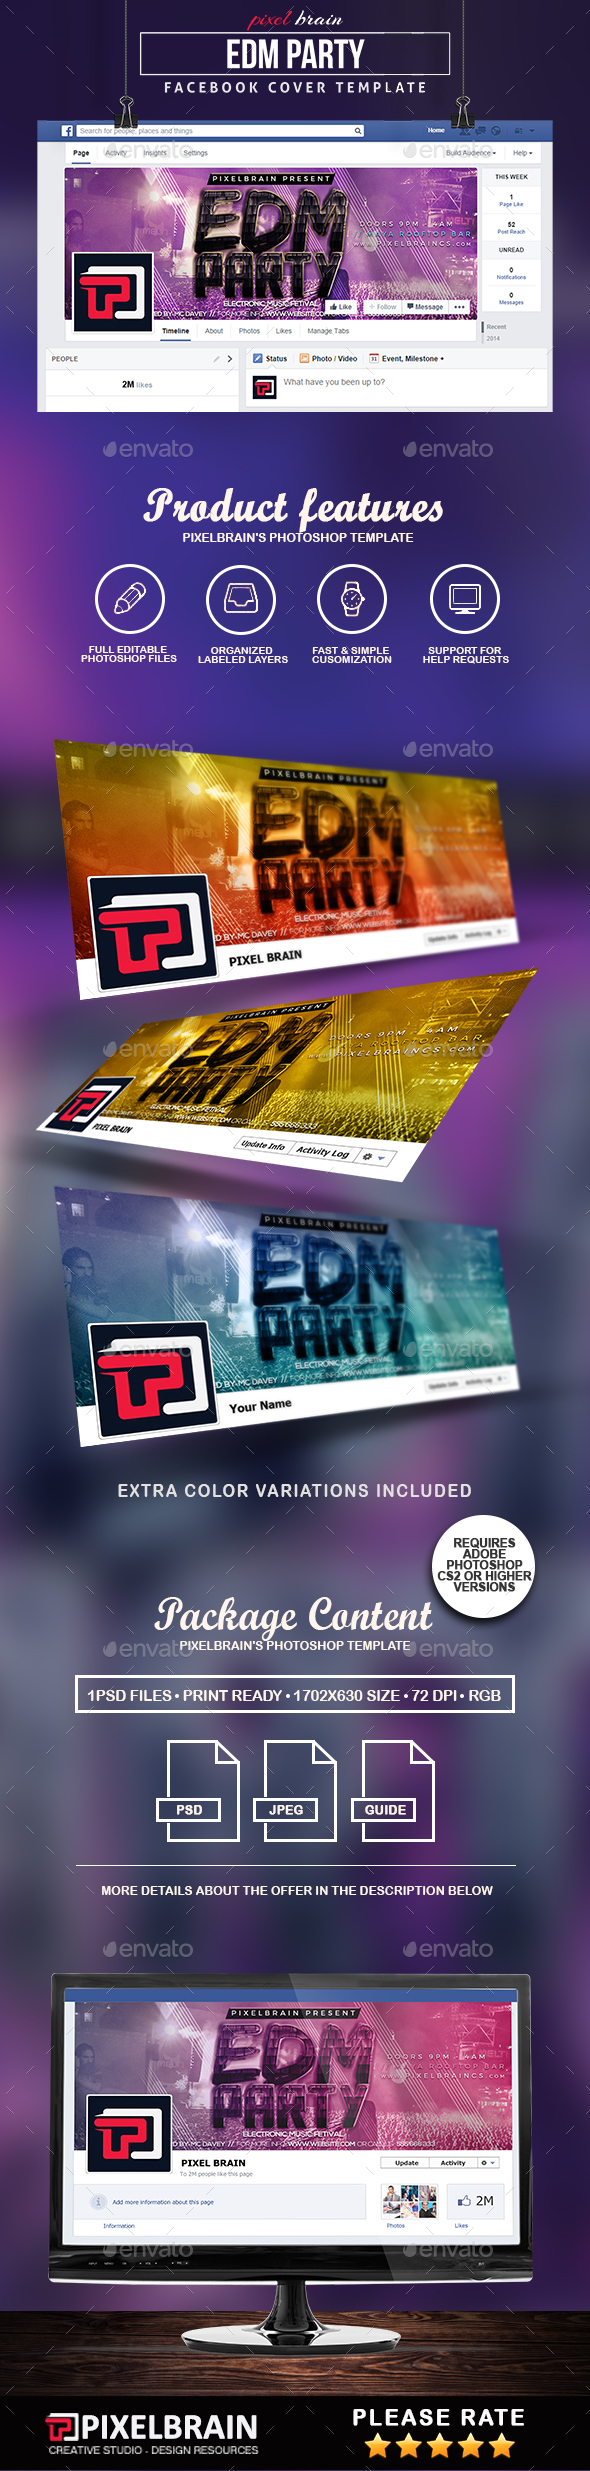 EDM Party Facebook Cover Template - Facebook Timeline Covers Social Media